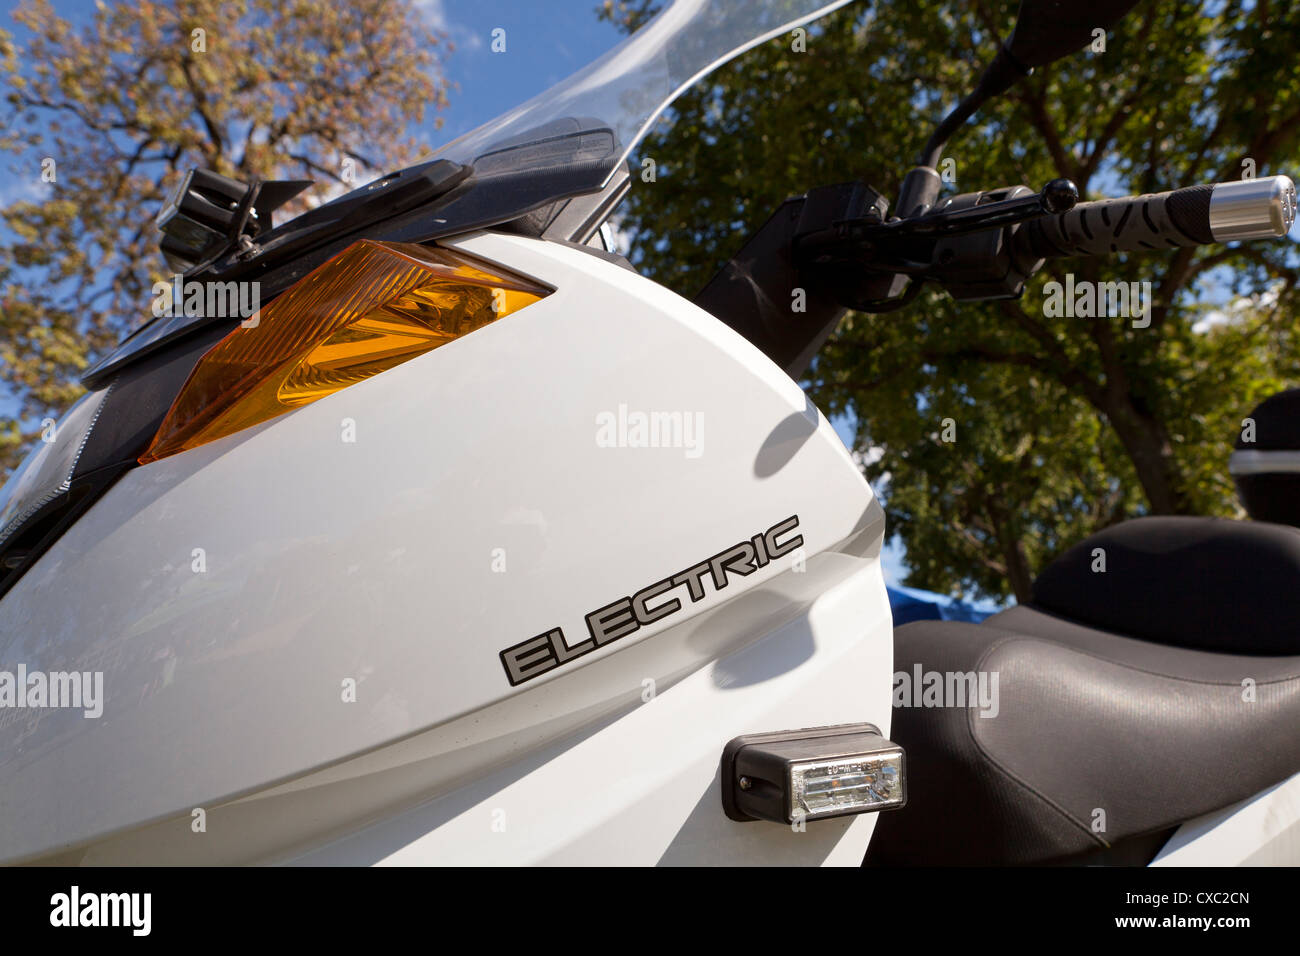 Electric scooter - Stock Image